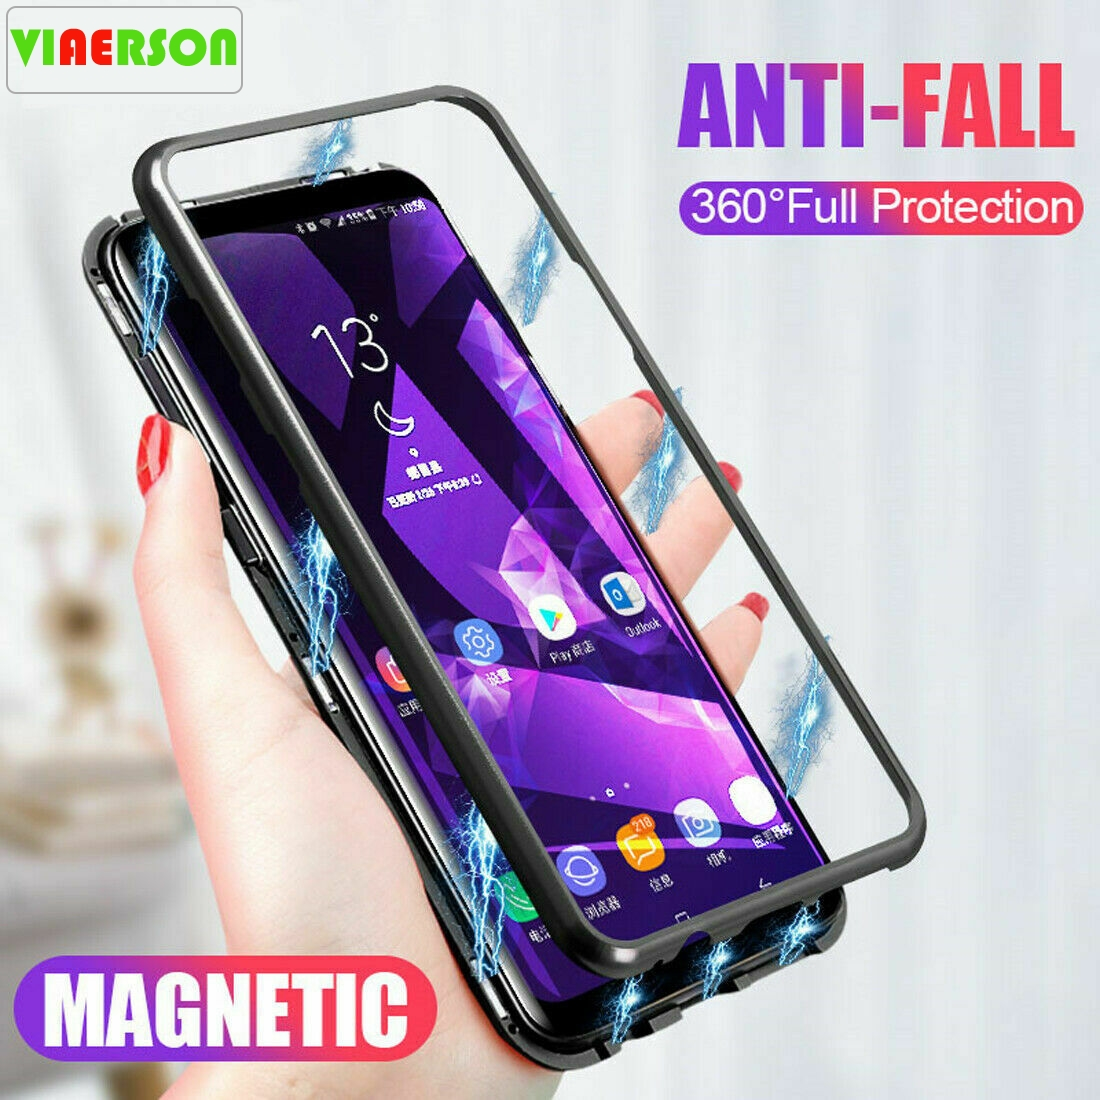 luxury-360-magnetic-adsorption-phone-cases-for-redmi-note-7-6-5-pro-6a-pocophone-font-b-f1-b-font-mi-8-lite-se-mi8se-with-tempered-glass-back